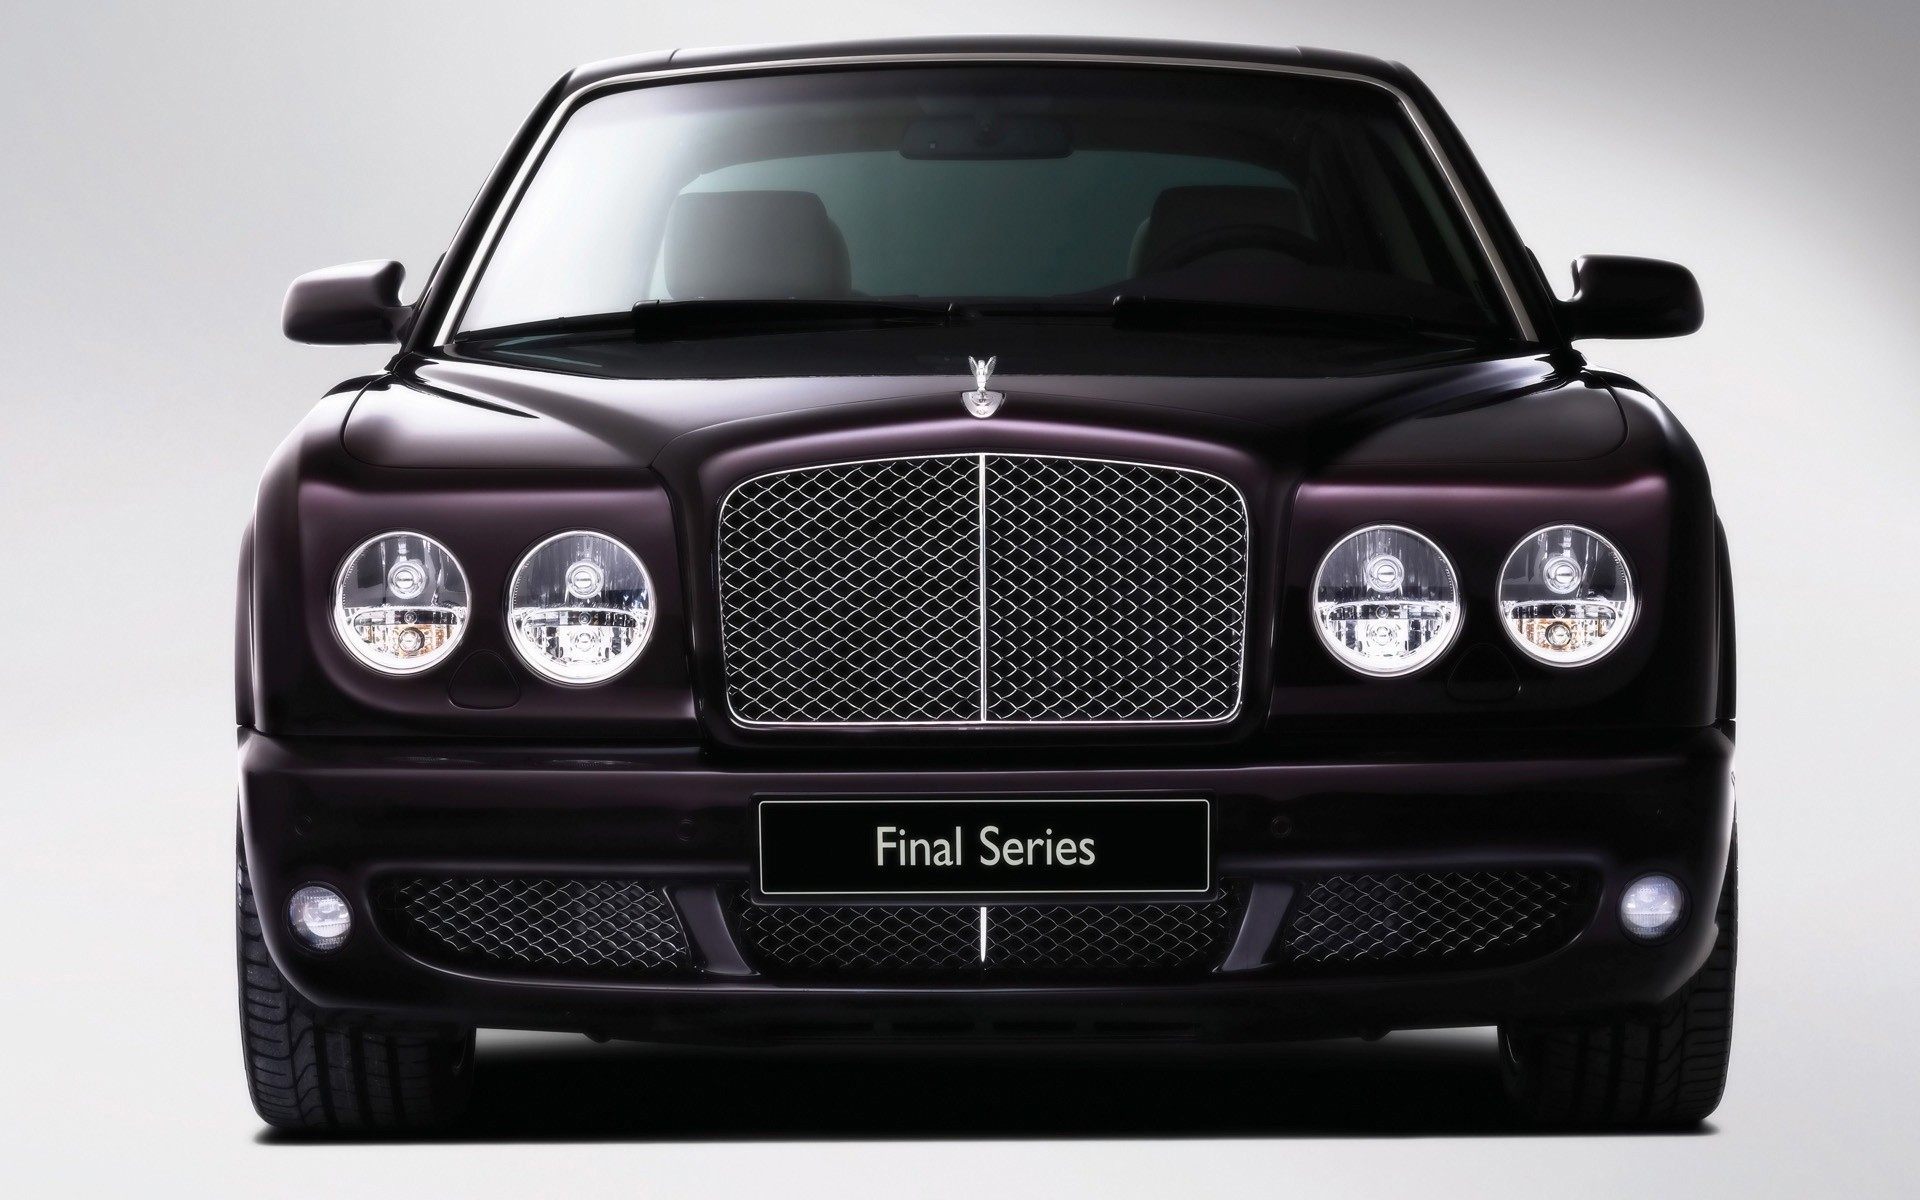 Bentley Arnage финал серии 2009